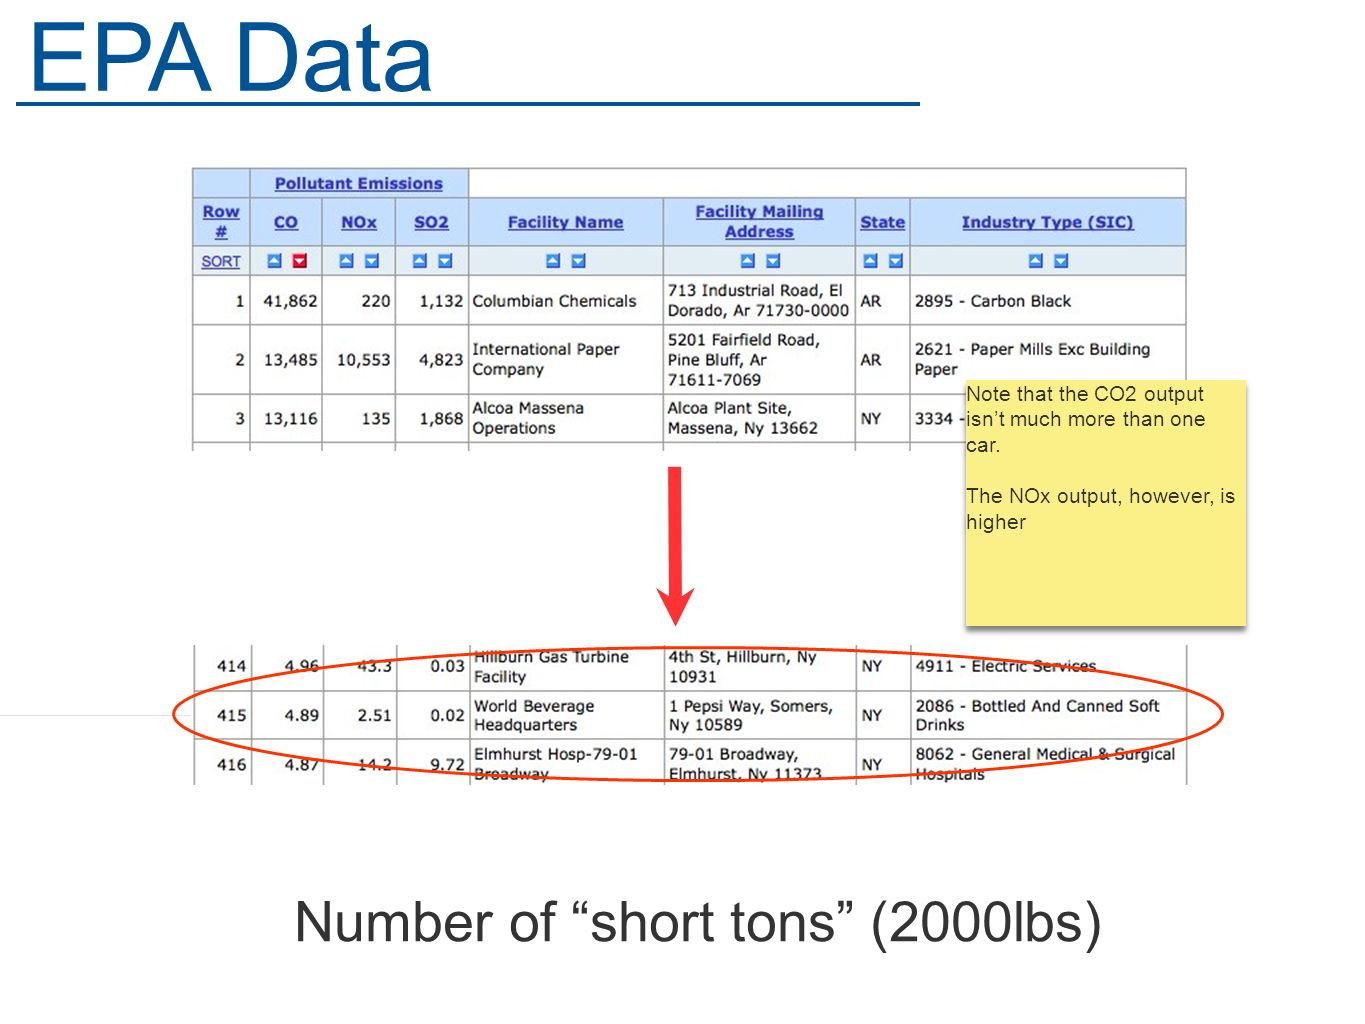 Number of short tons (2000lbs) EPA Data Note that the CO2 output isnt much more than one car.